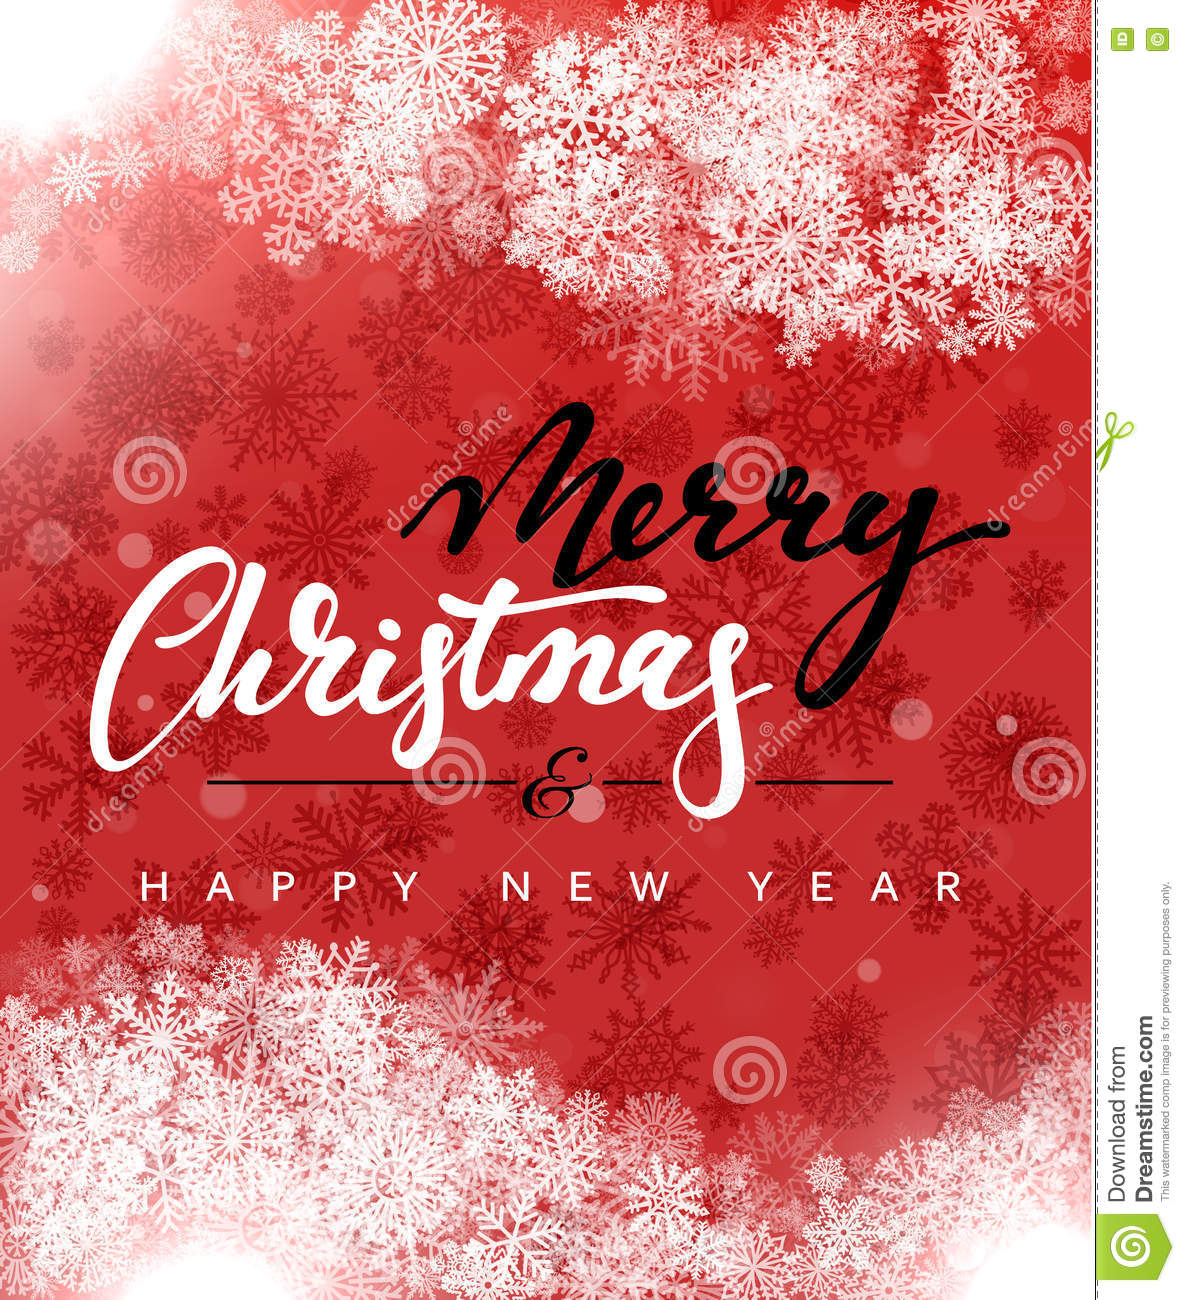 merry christmas and happy new year concept greeting card design postcard background for print or banner to your website